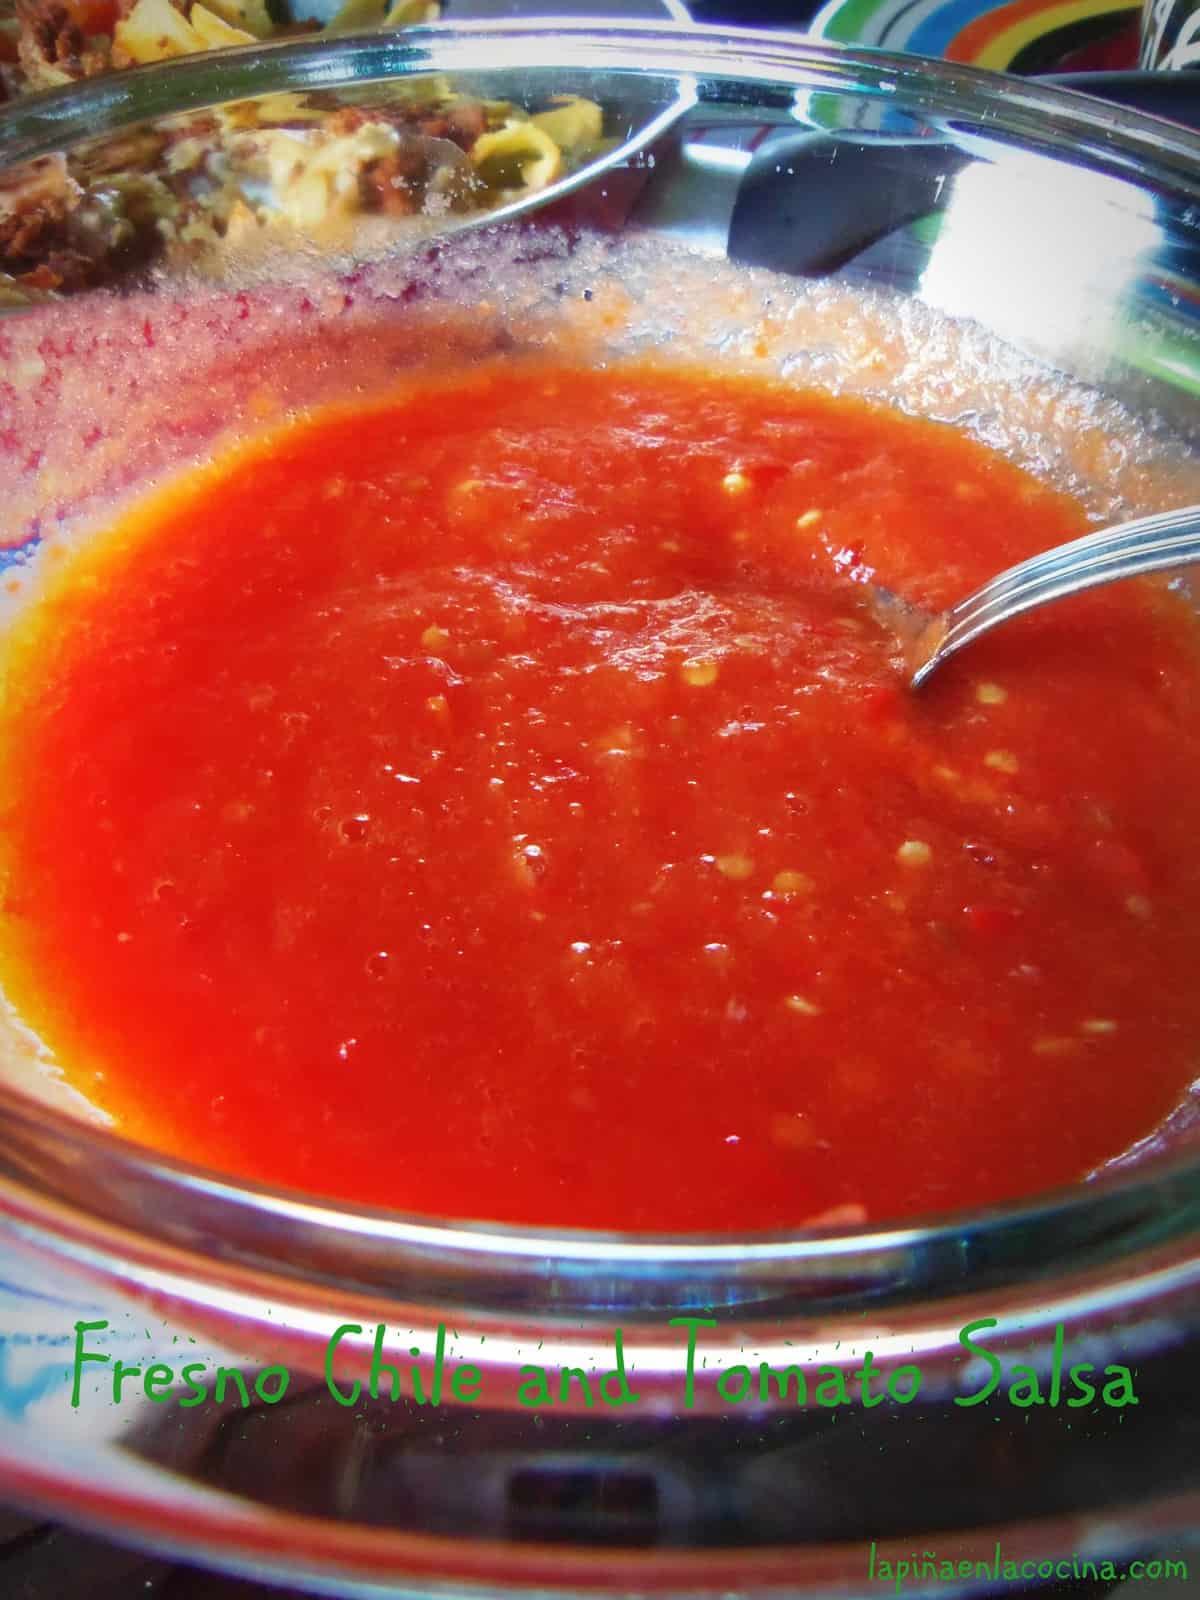 The simplest and most common of Mexican salsa's, also known as Salsa de Mesa or Table Salsa